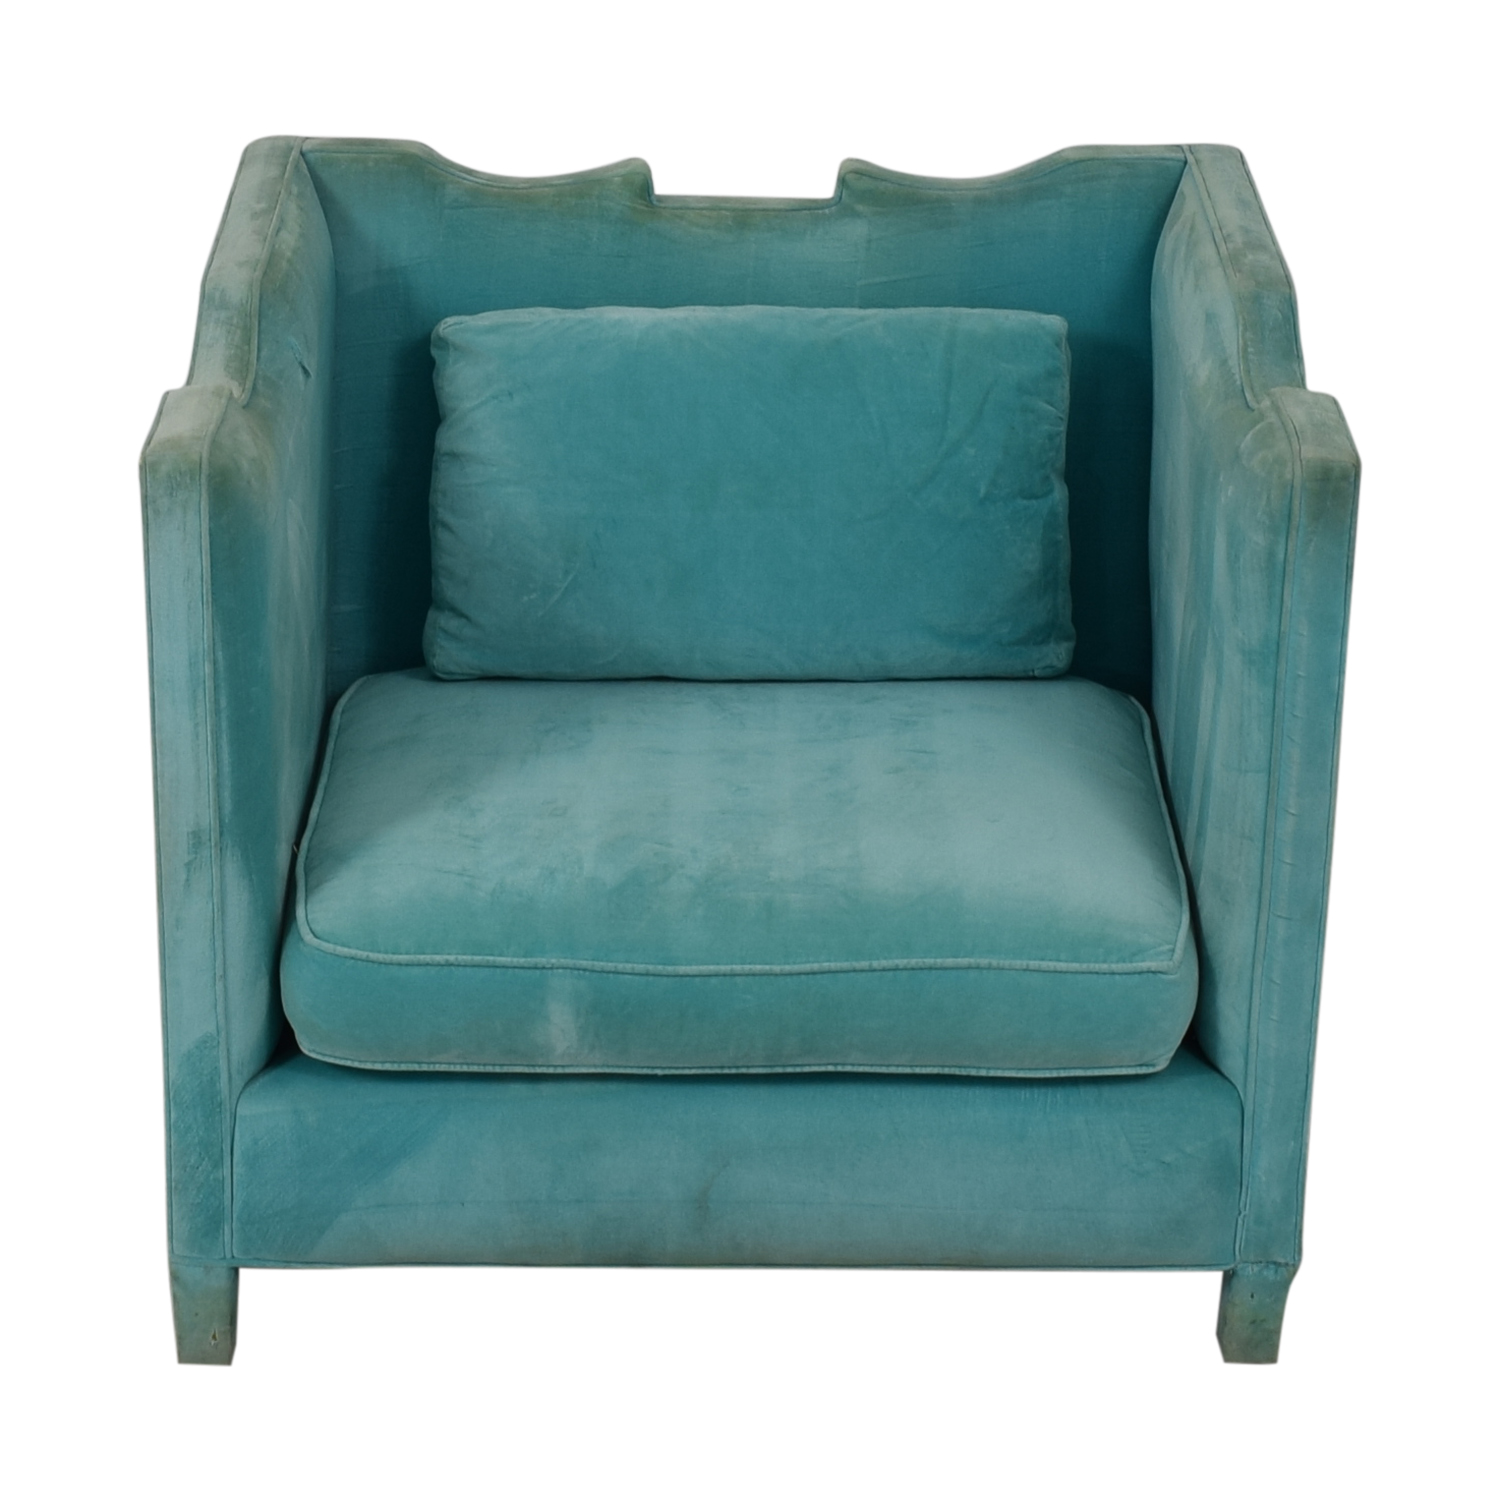 Shine by S.H.O Shine by S.H.O Limoge Chair Cotton Velvet with Polished Nickel Studs coupon